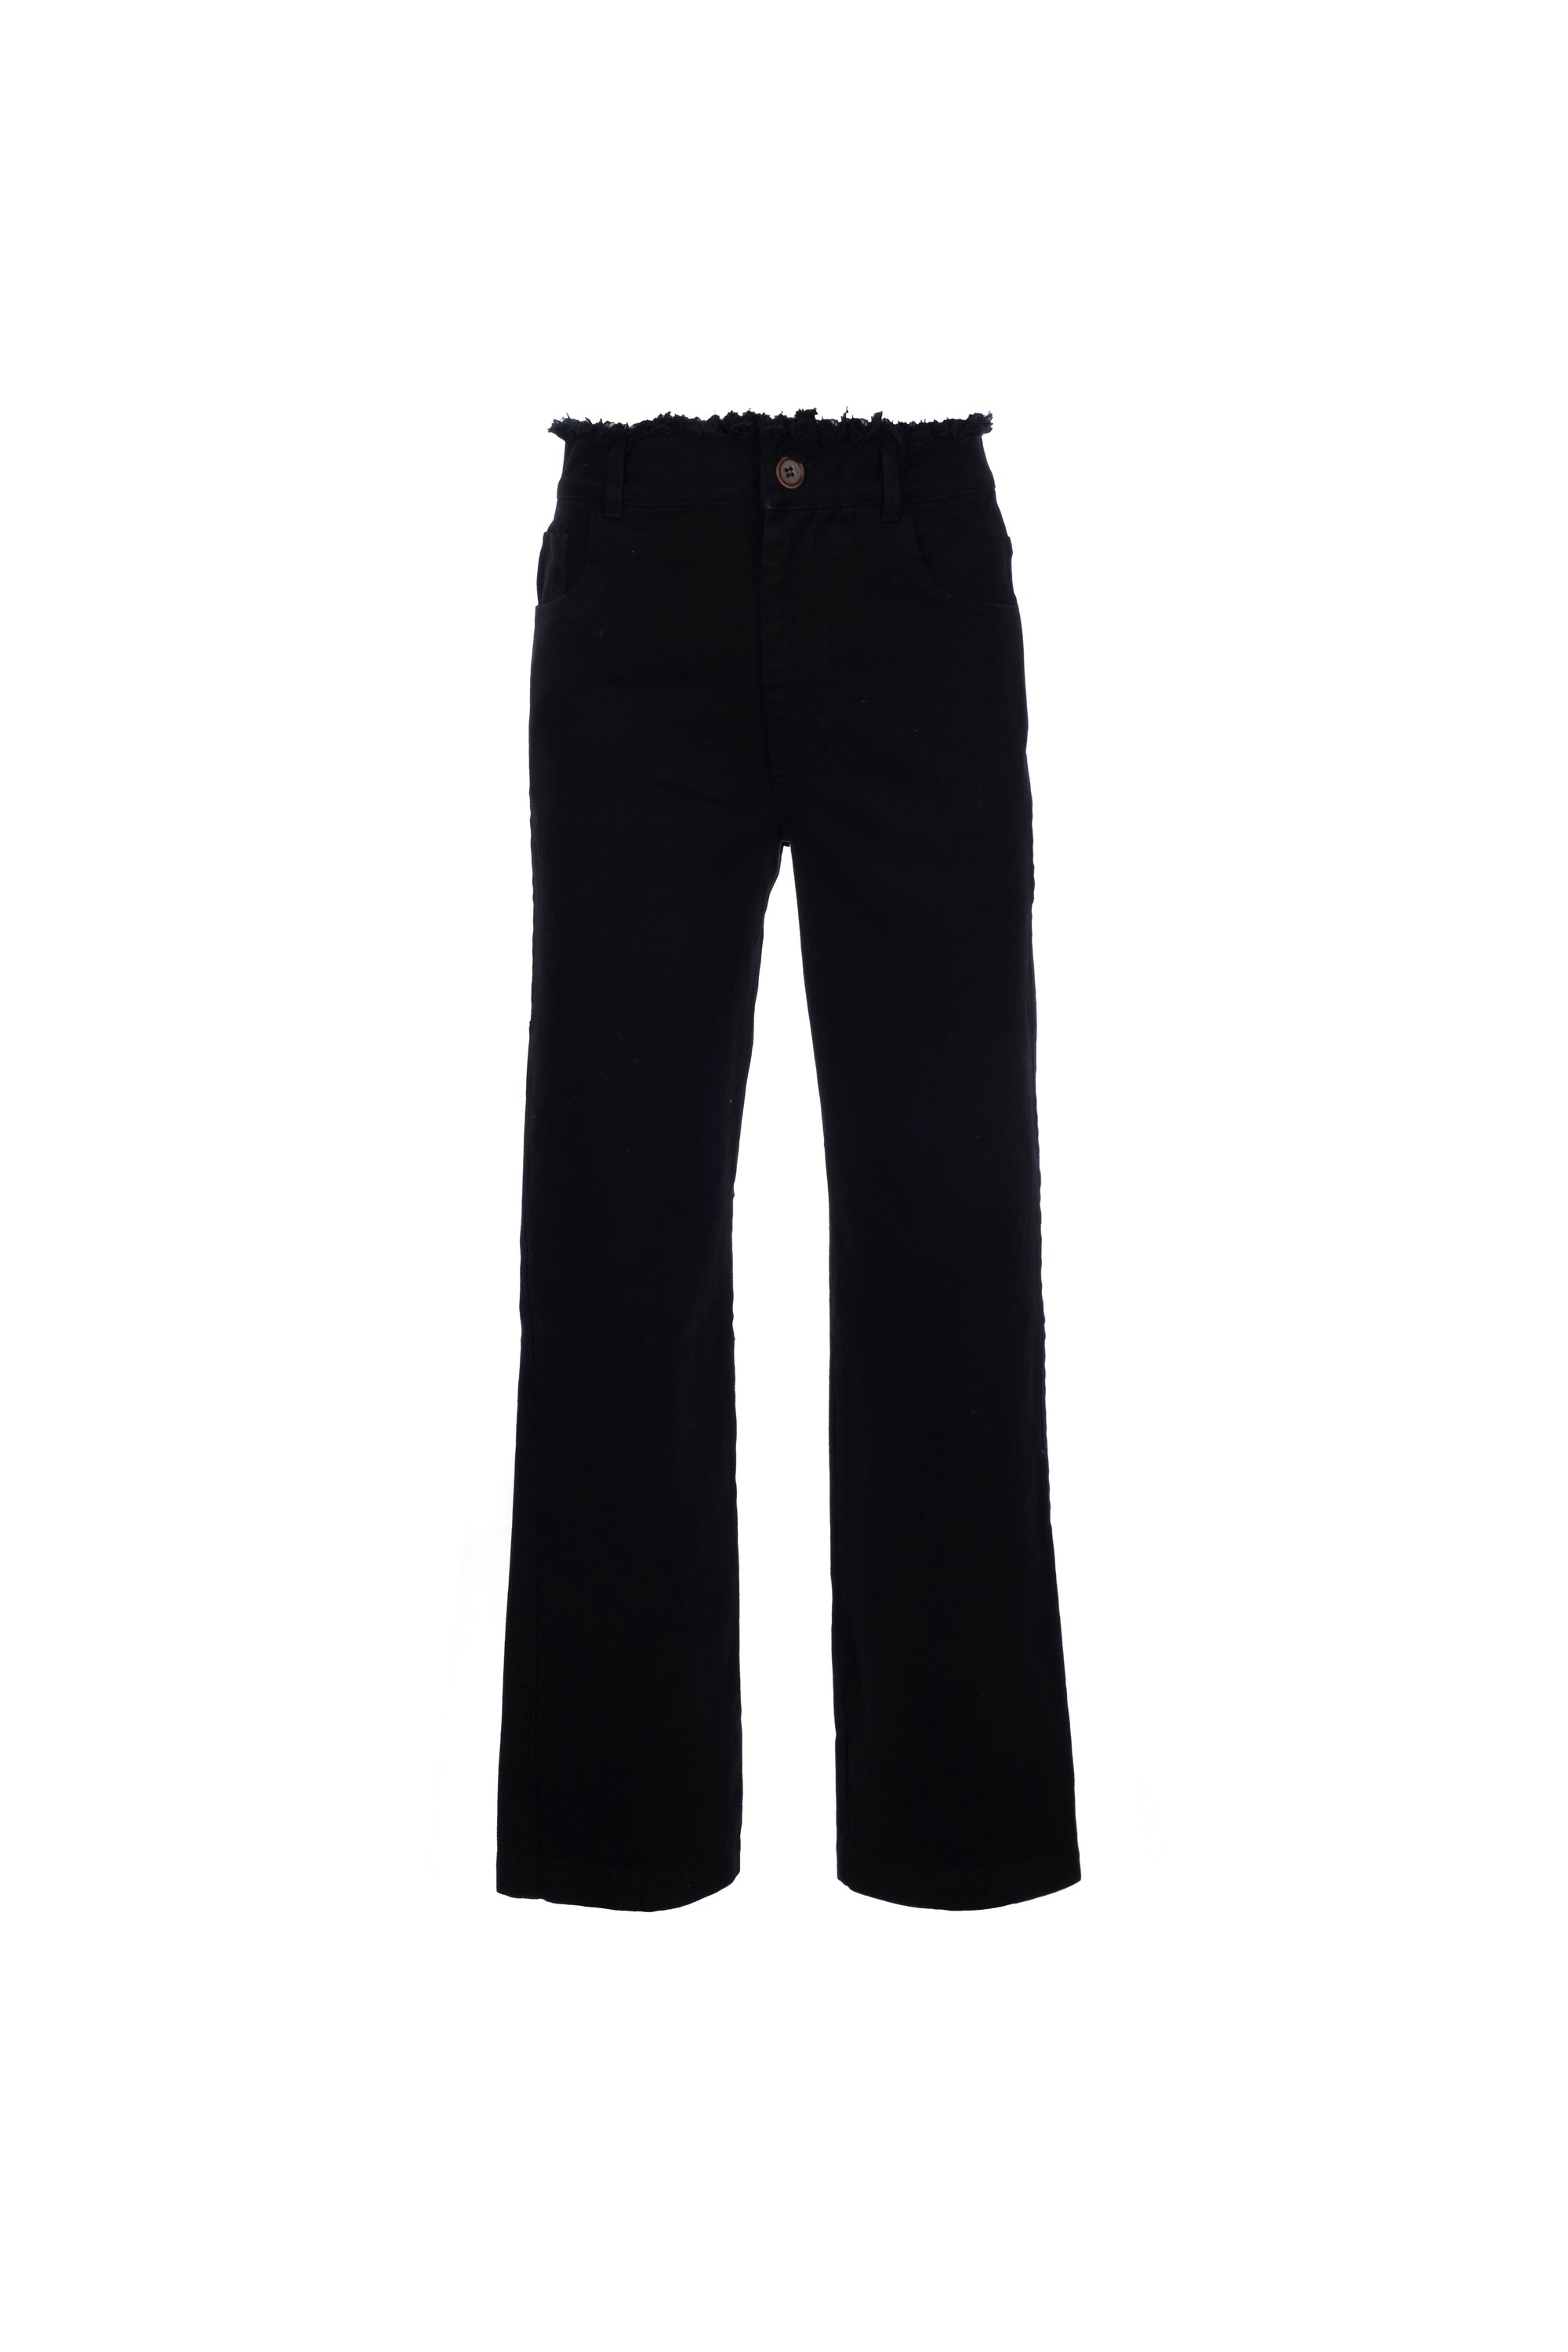 By Signe Sage Jeans in Black with flared legs and a raw-edge waist.